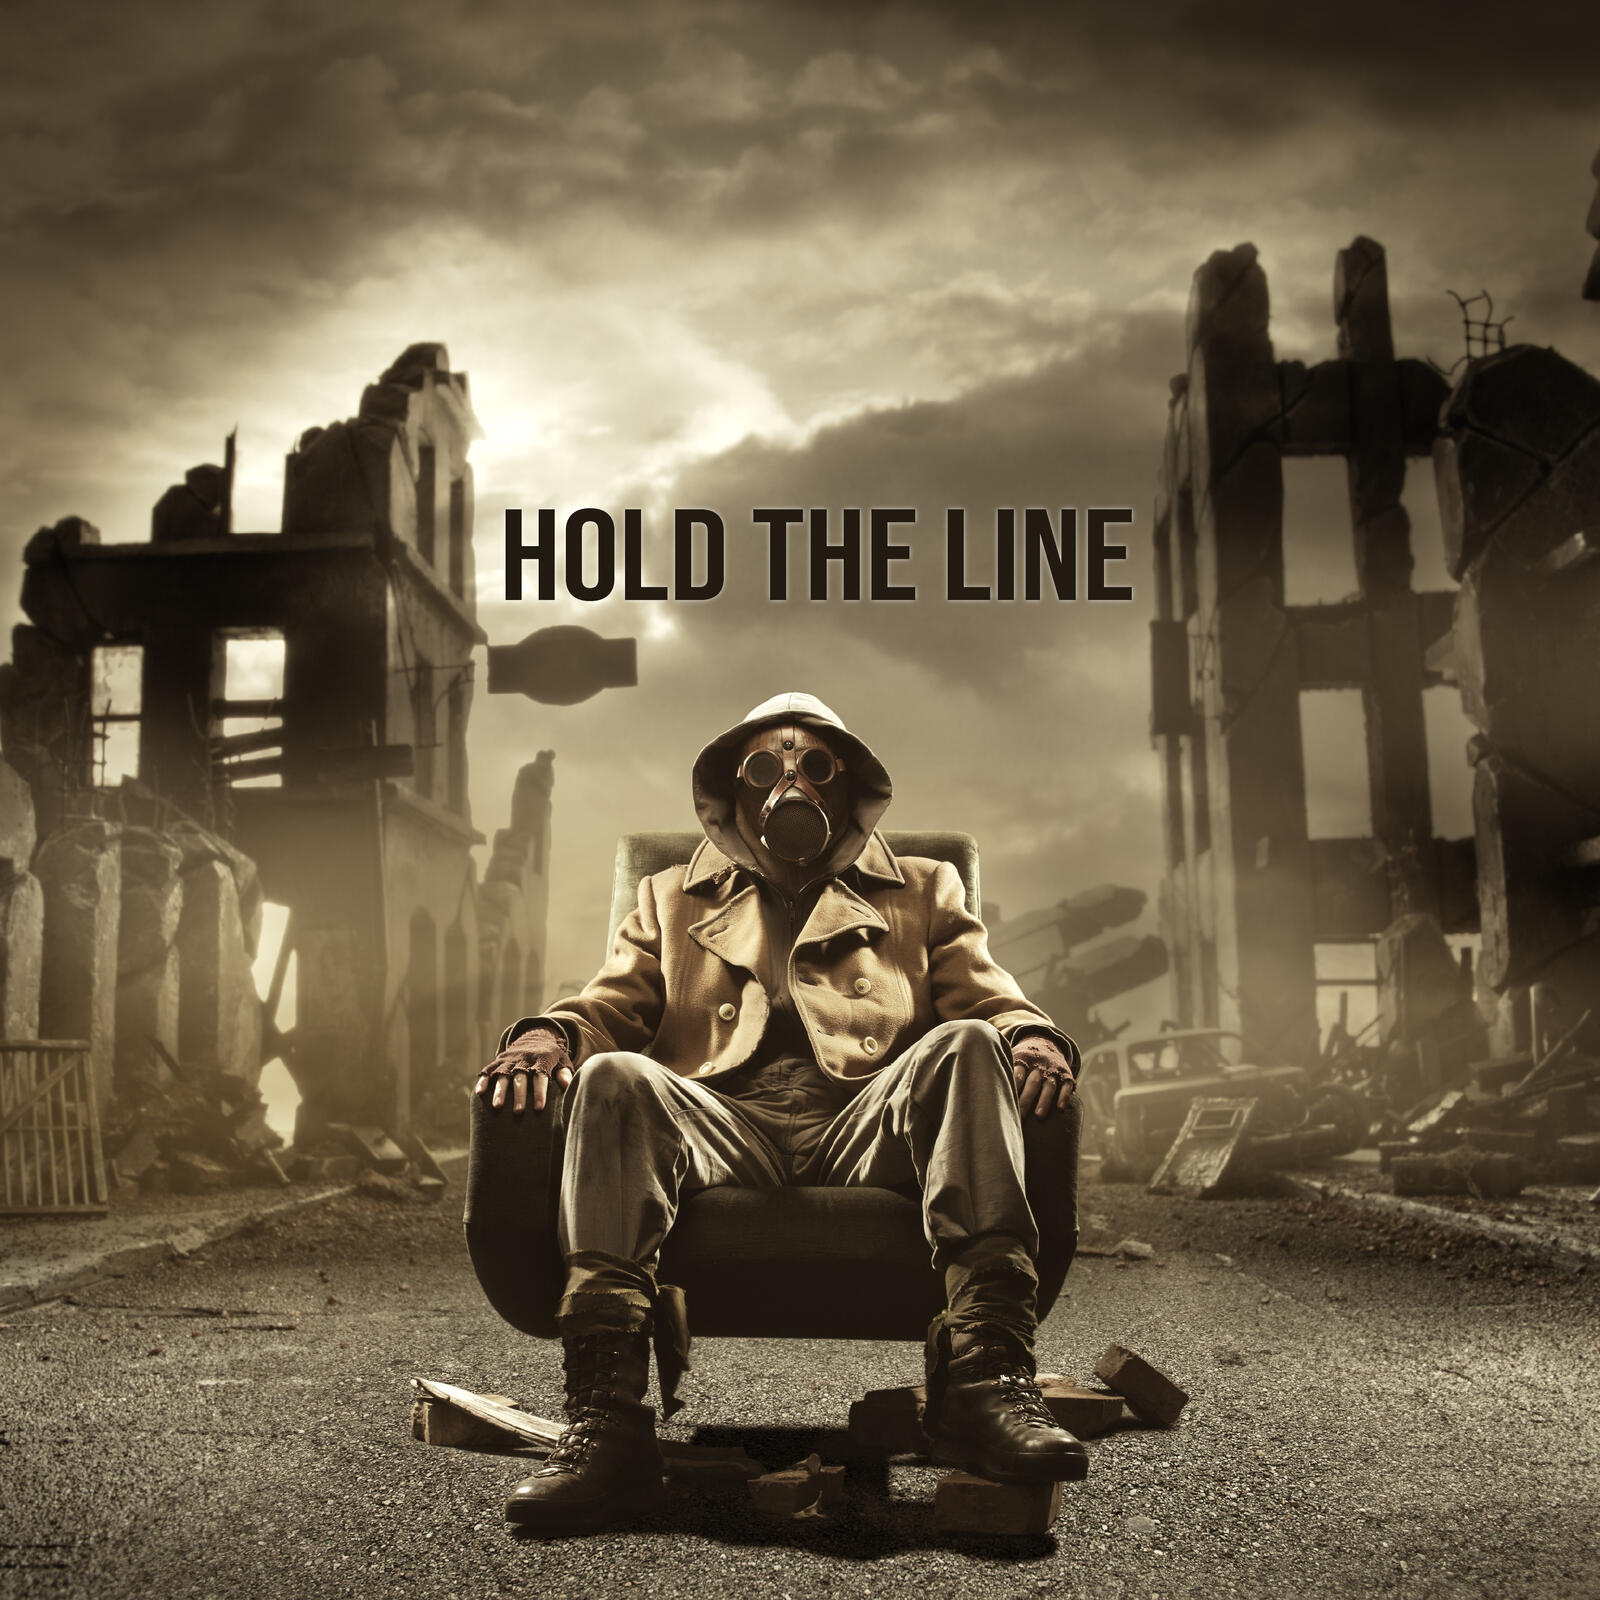 4: Hold The Line Episode 4